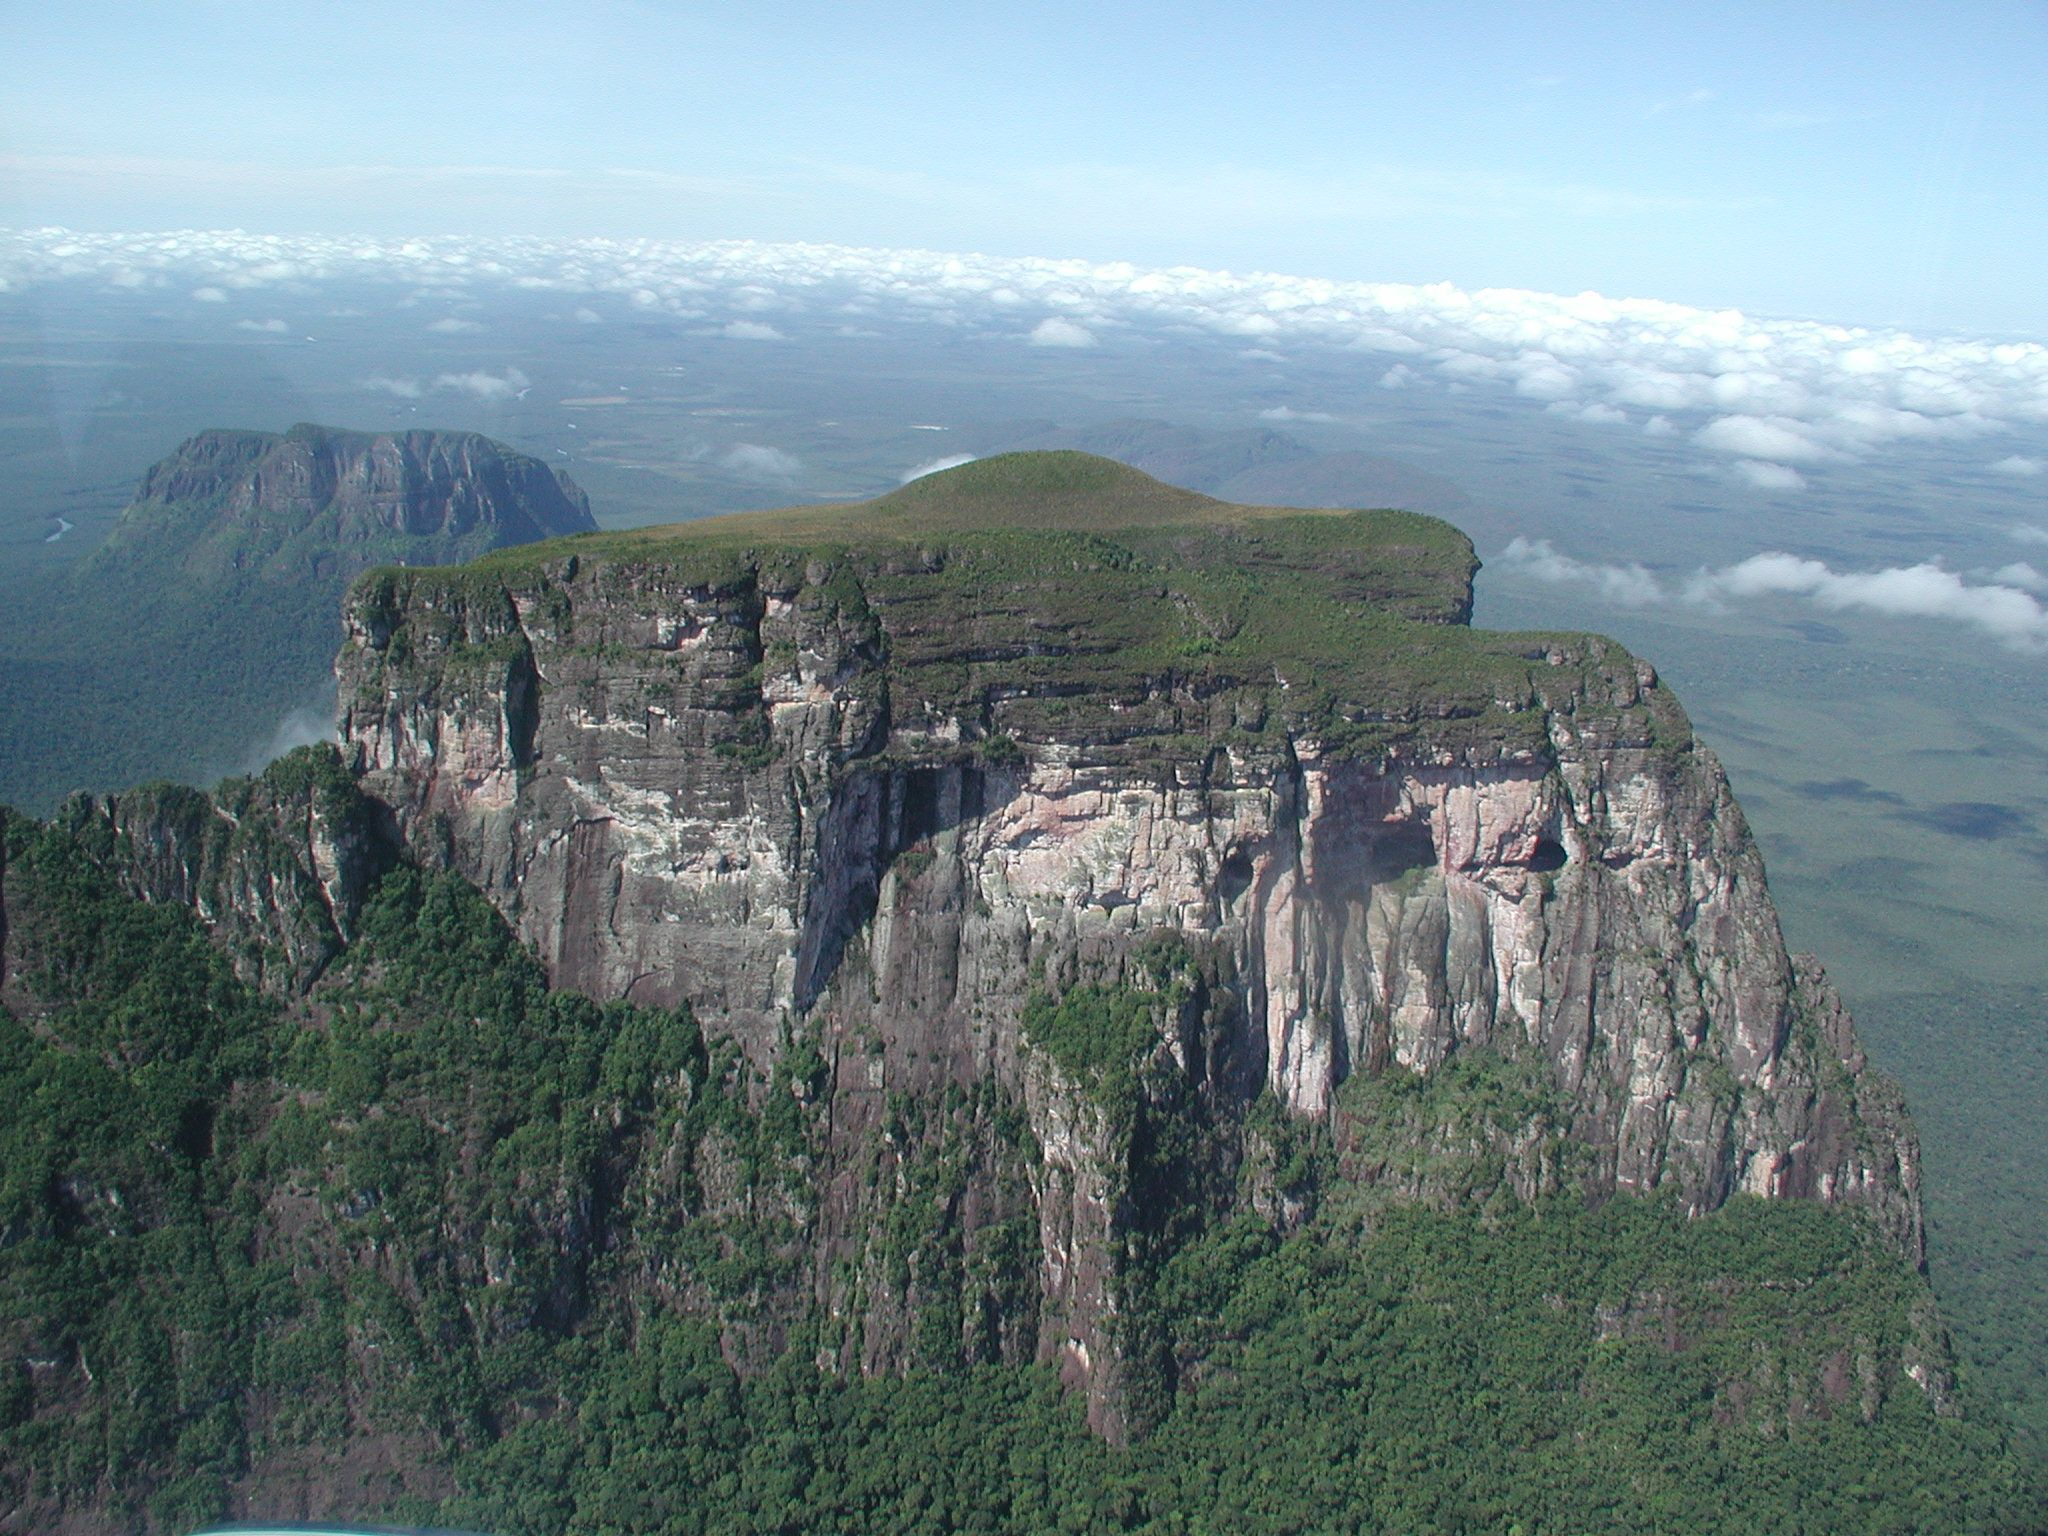 Northern exposure of Cerro Autana showing the entrance to the caves, in the mid section of the mountain, in the right side below the line of vegetation.